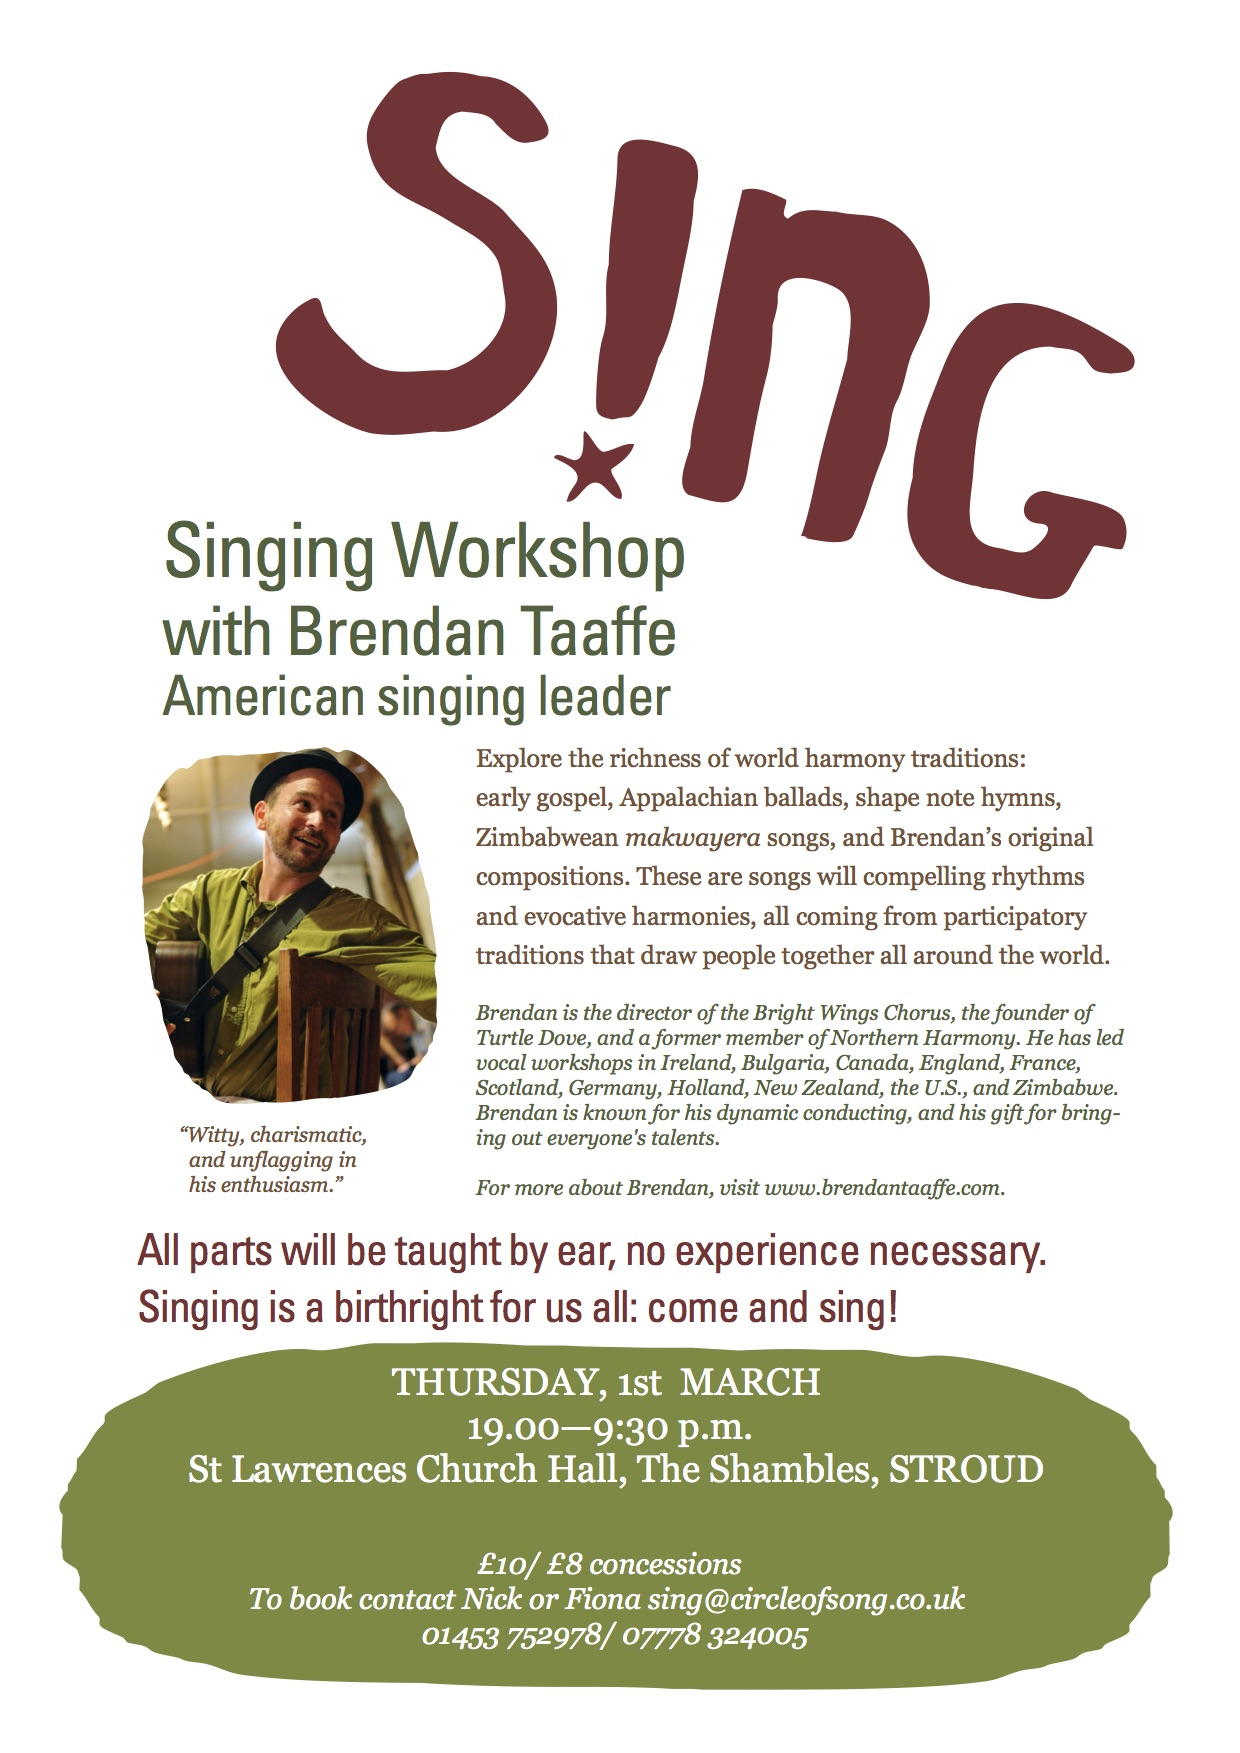 Singing workshop with Brendan Taaffe